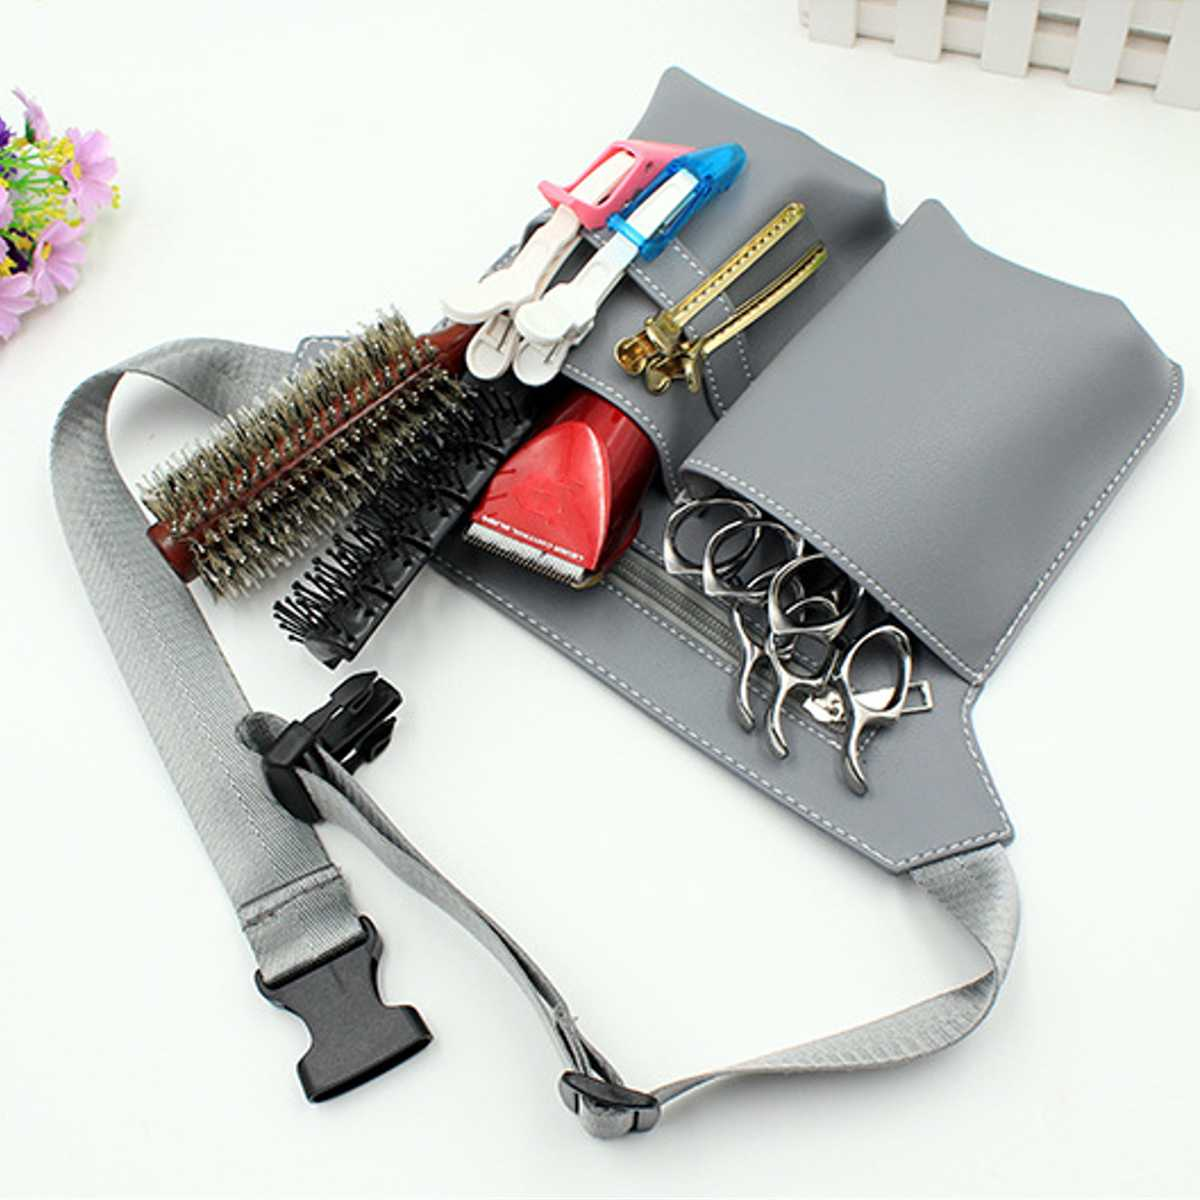 Salon Hair Scissor Bag Professional Big Storage Space Hair Comb Shear Pouch Holder Case Belt Barber Hairdressing Tool Bag